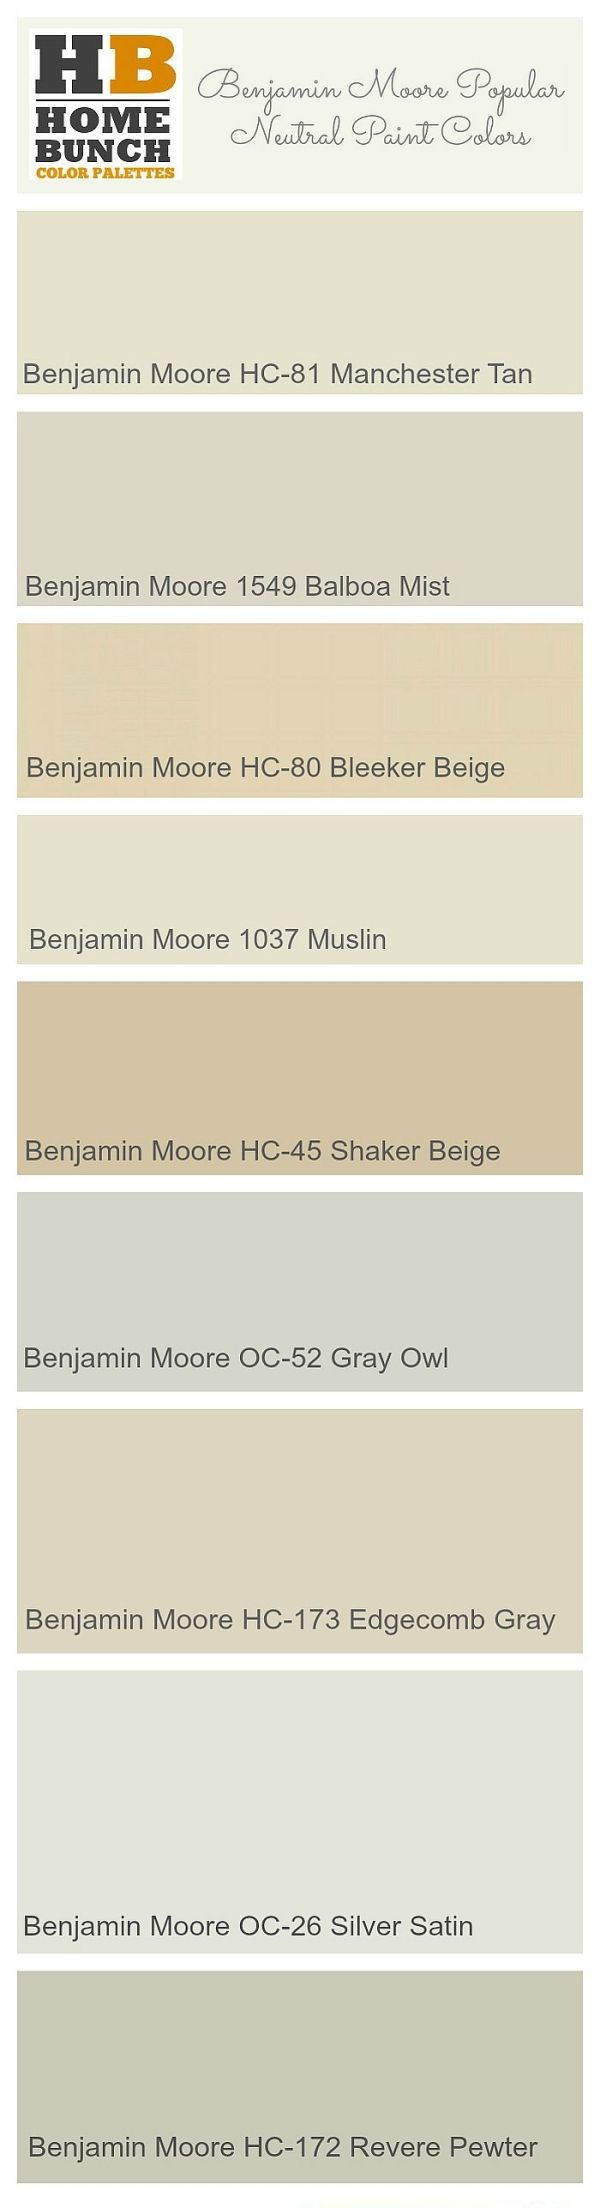 Benjamin moore popular neutral paint colors benjamin for Best light neutral paint